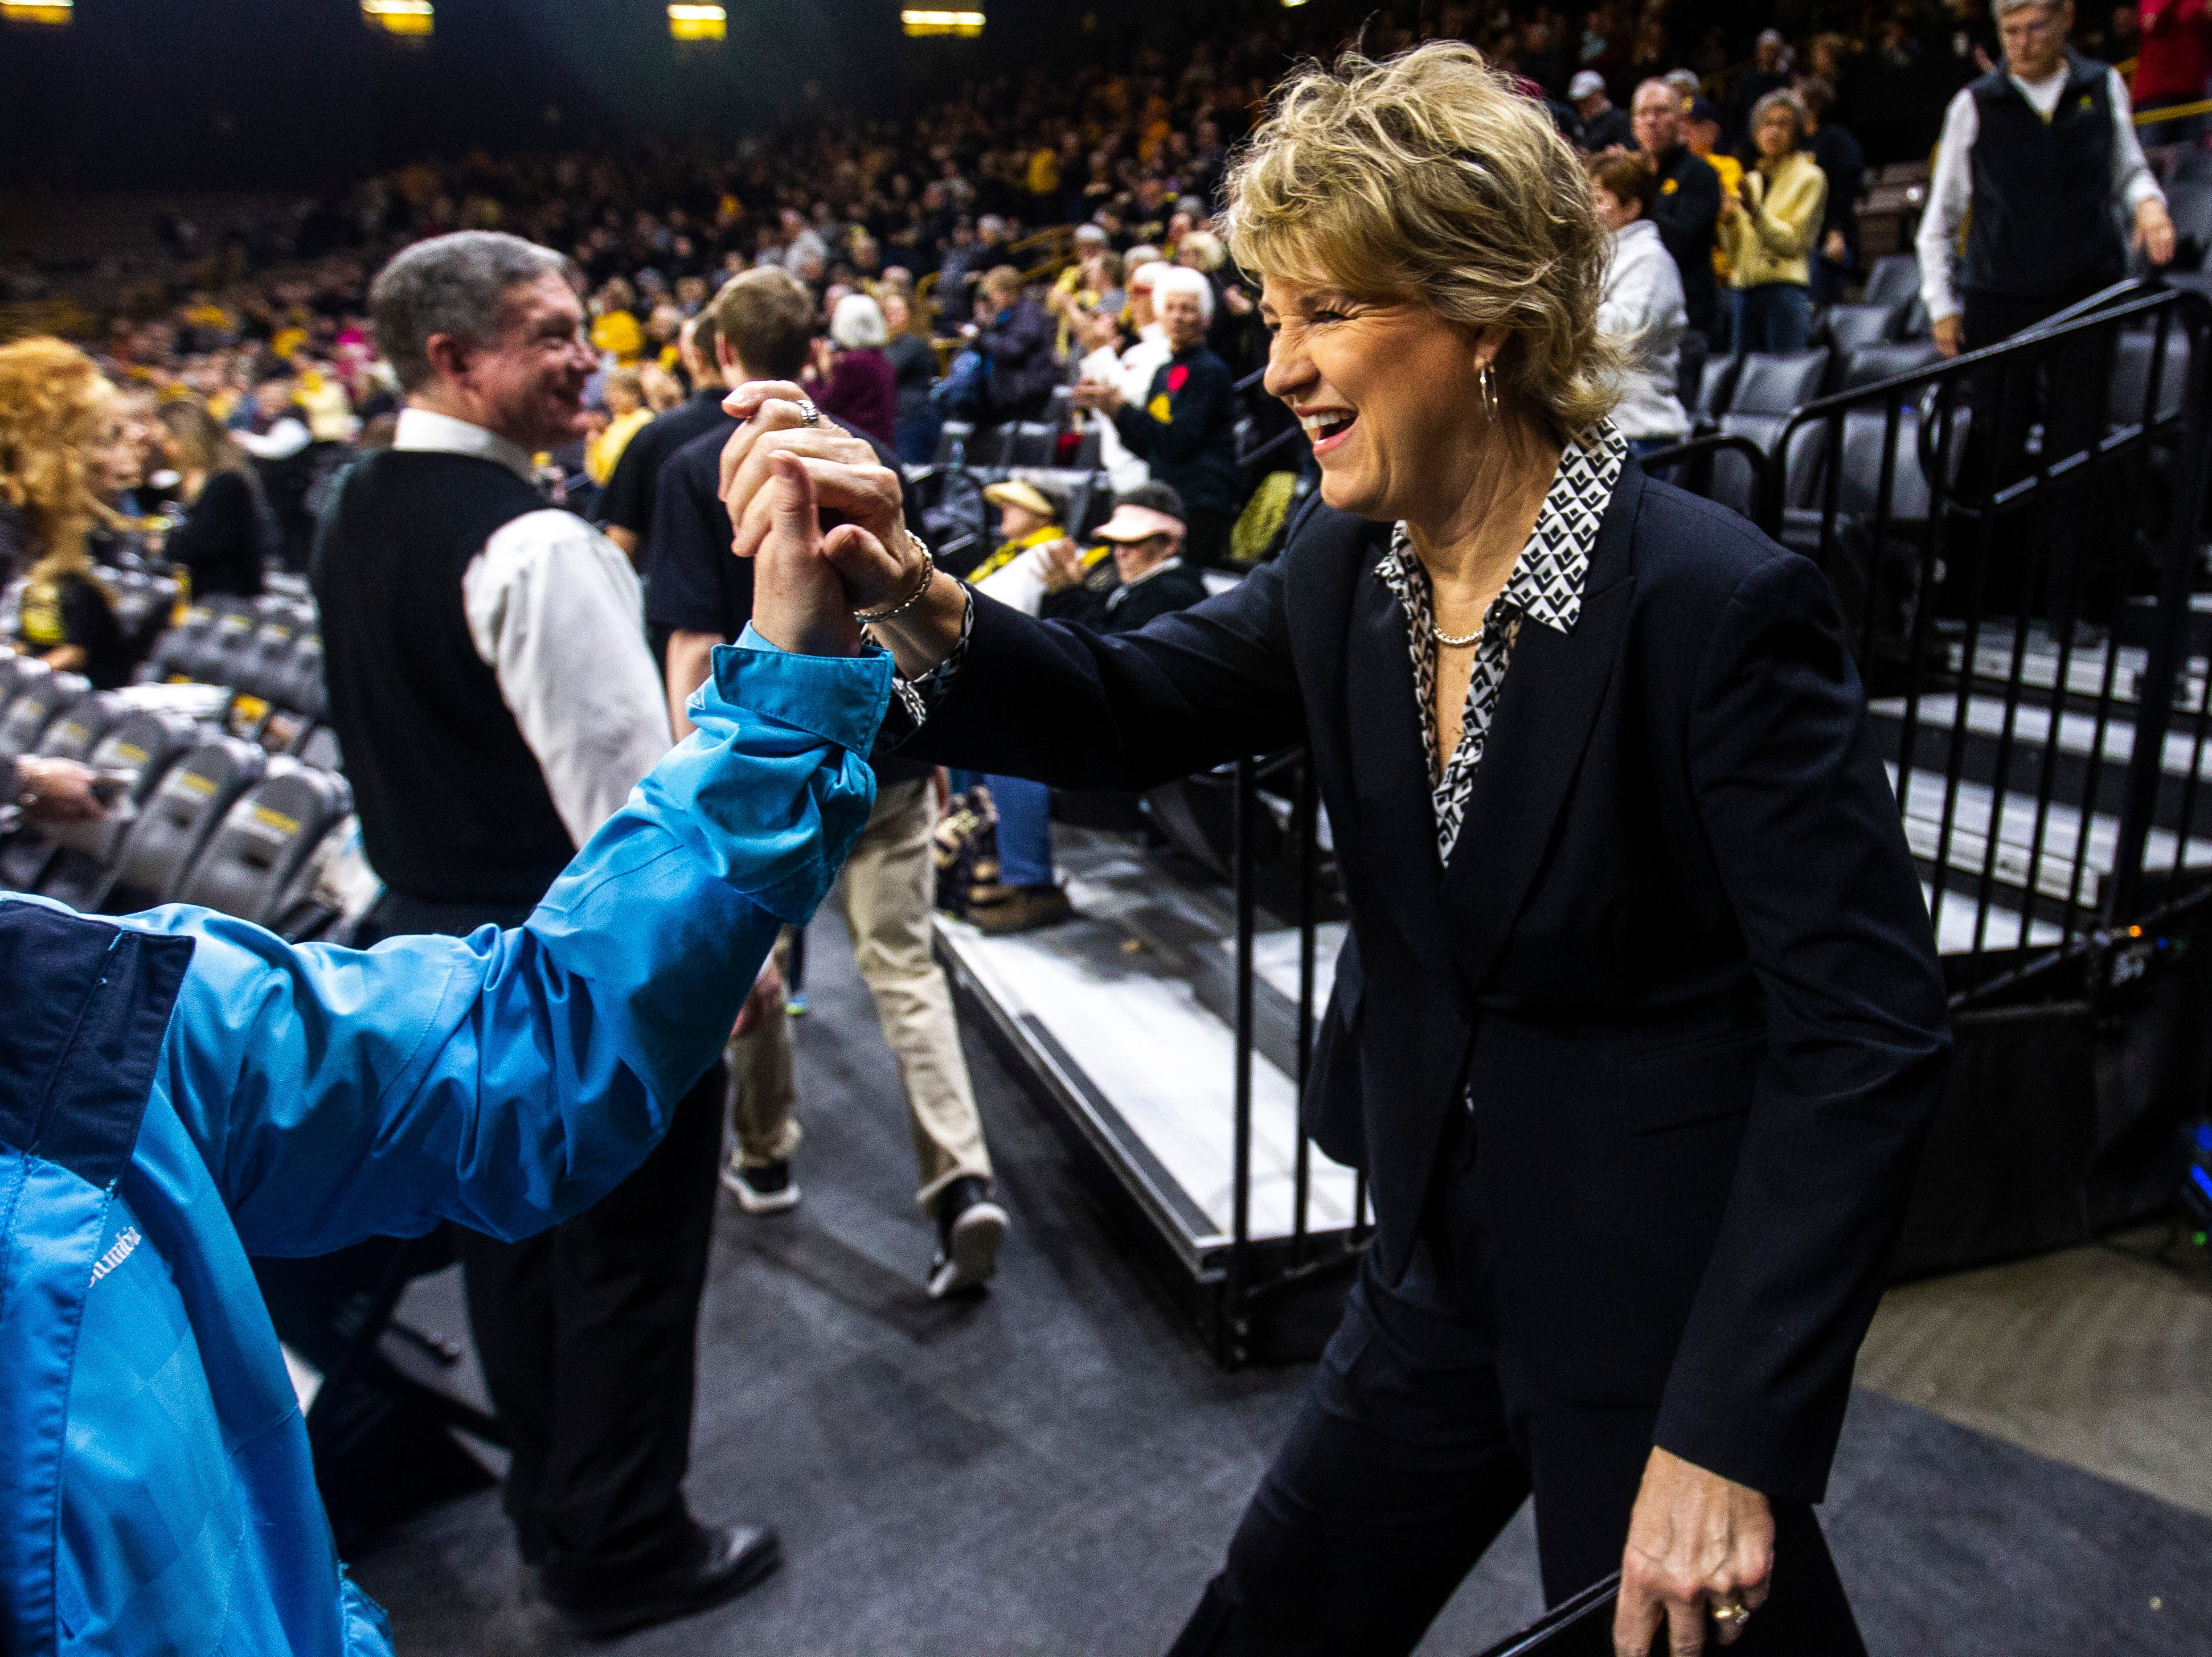 Iowa head coach Lisa Bluder high-fives a fan before a NCAA Big Ten Conference women's basketball game on Thursday, Feb. 14, 2019 at Carver-Hawkeye Arena in Iowa City, Iowa.